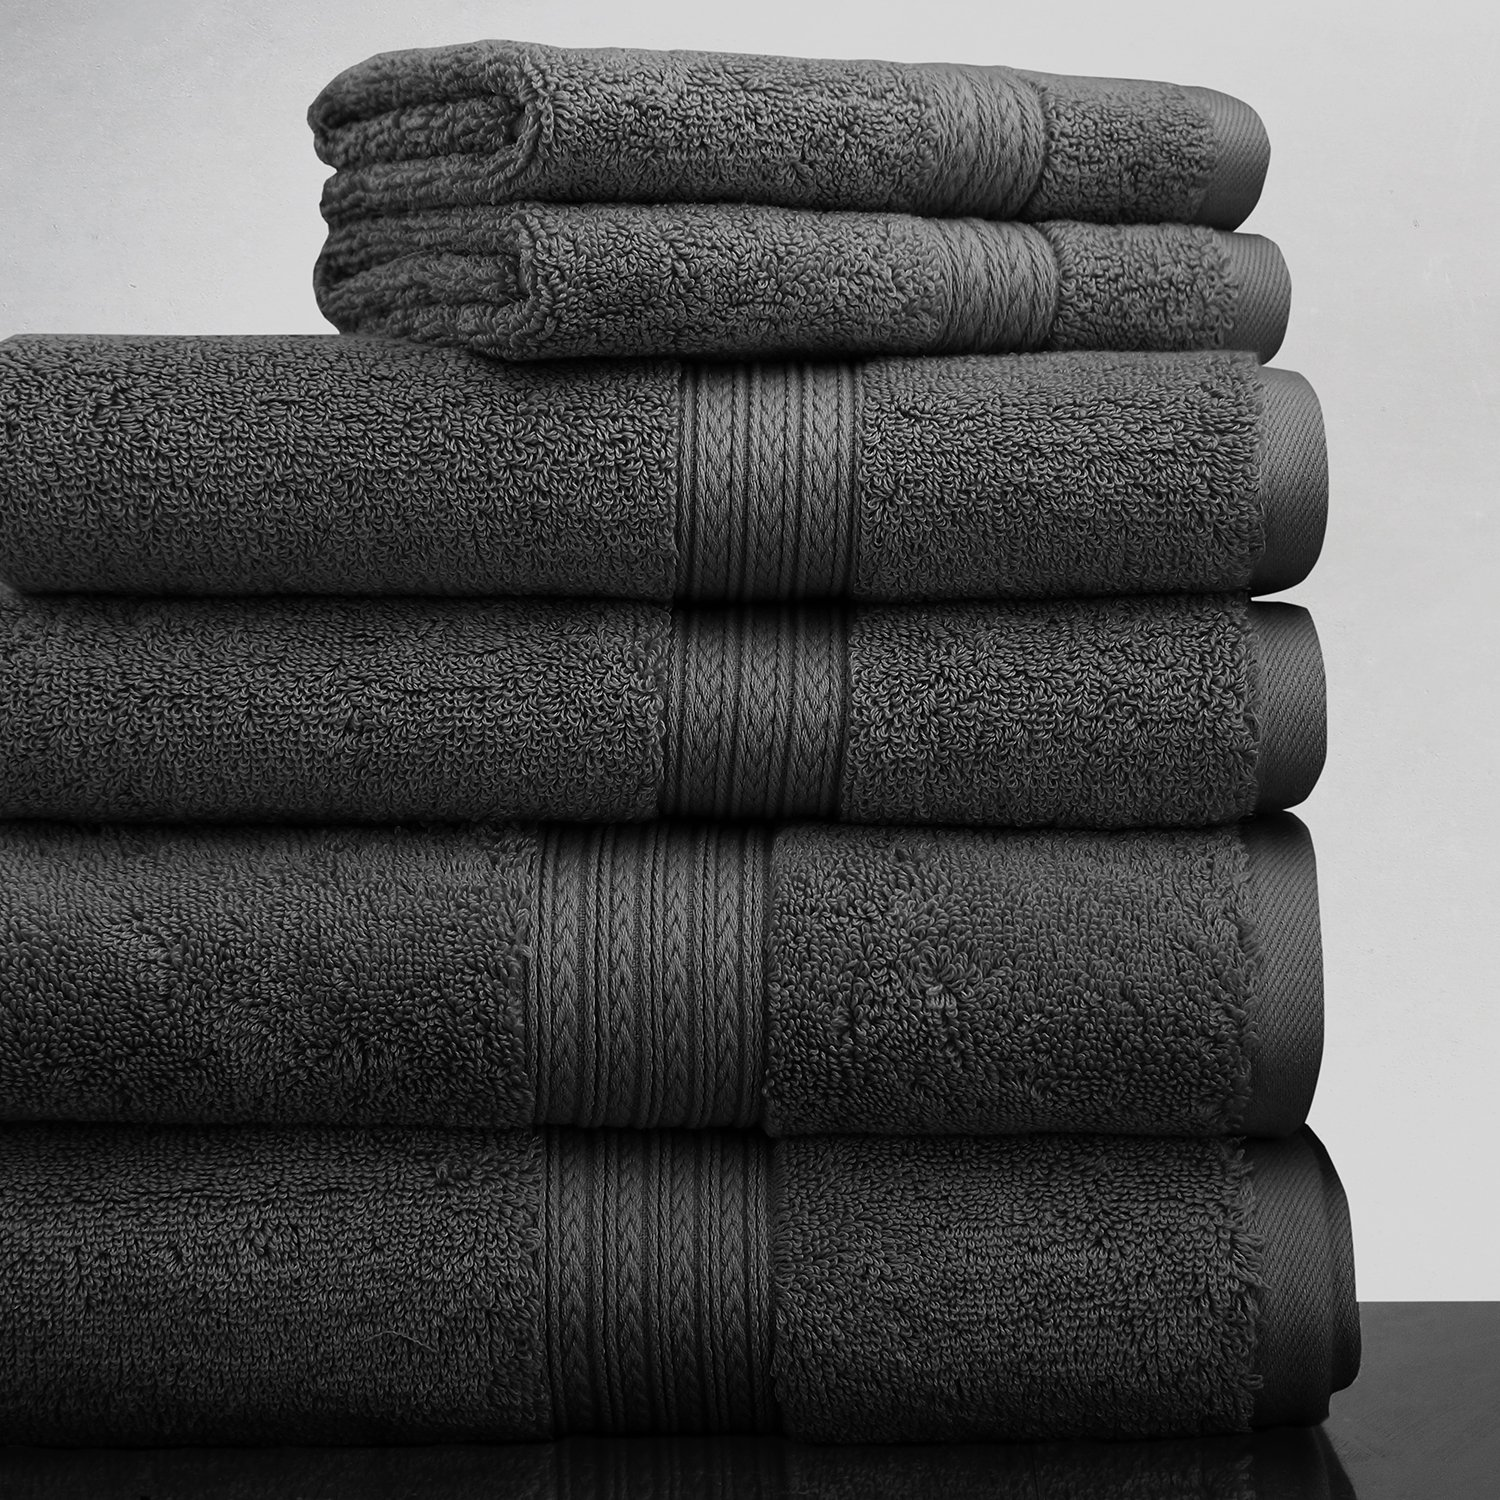 Luxor Linens New Arrival Bliss Collection Egyptian Cotton Classic 6-Piece Towel Set -Charcoal